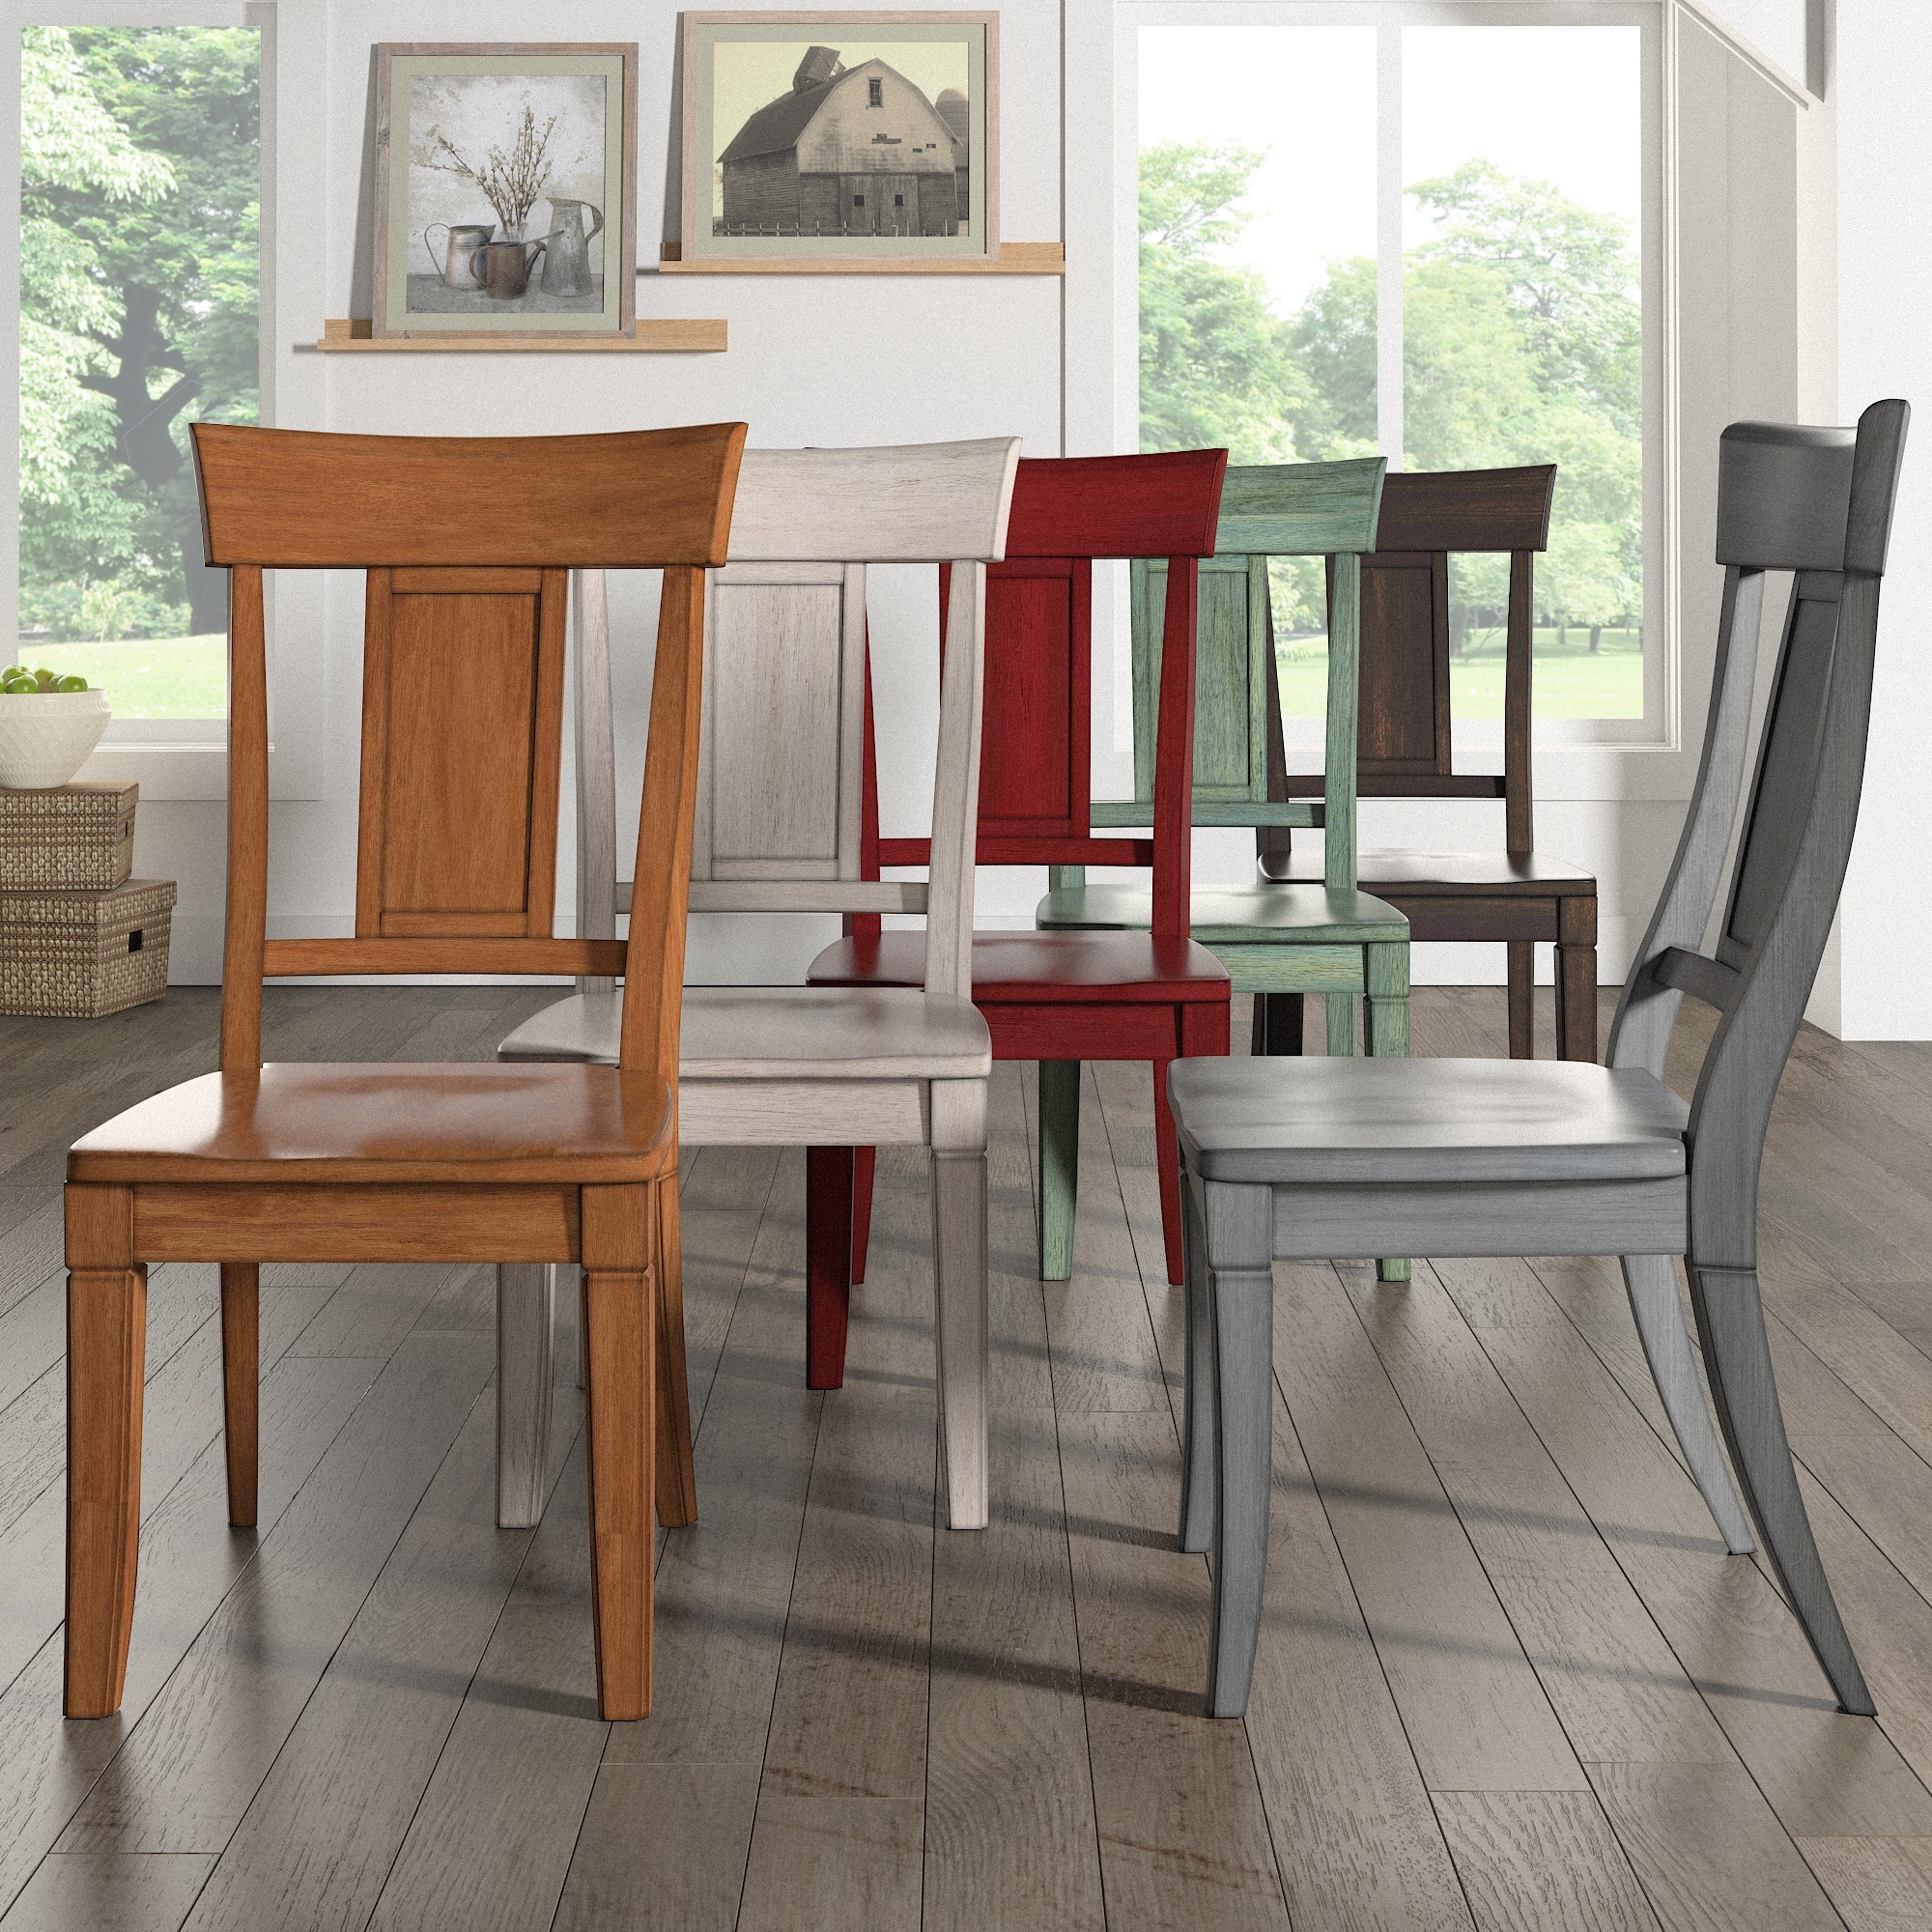 Eleanor Panel Back Wood Dining Chair Set Of 2 By Inspire Q Clic Free Shipping Today 13535890